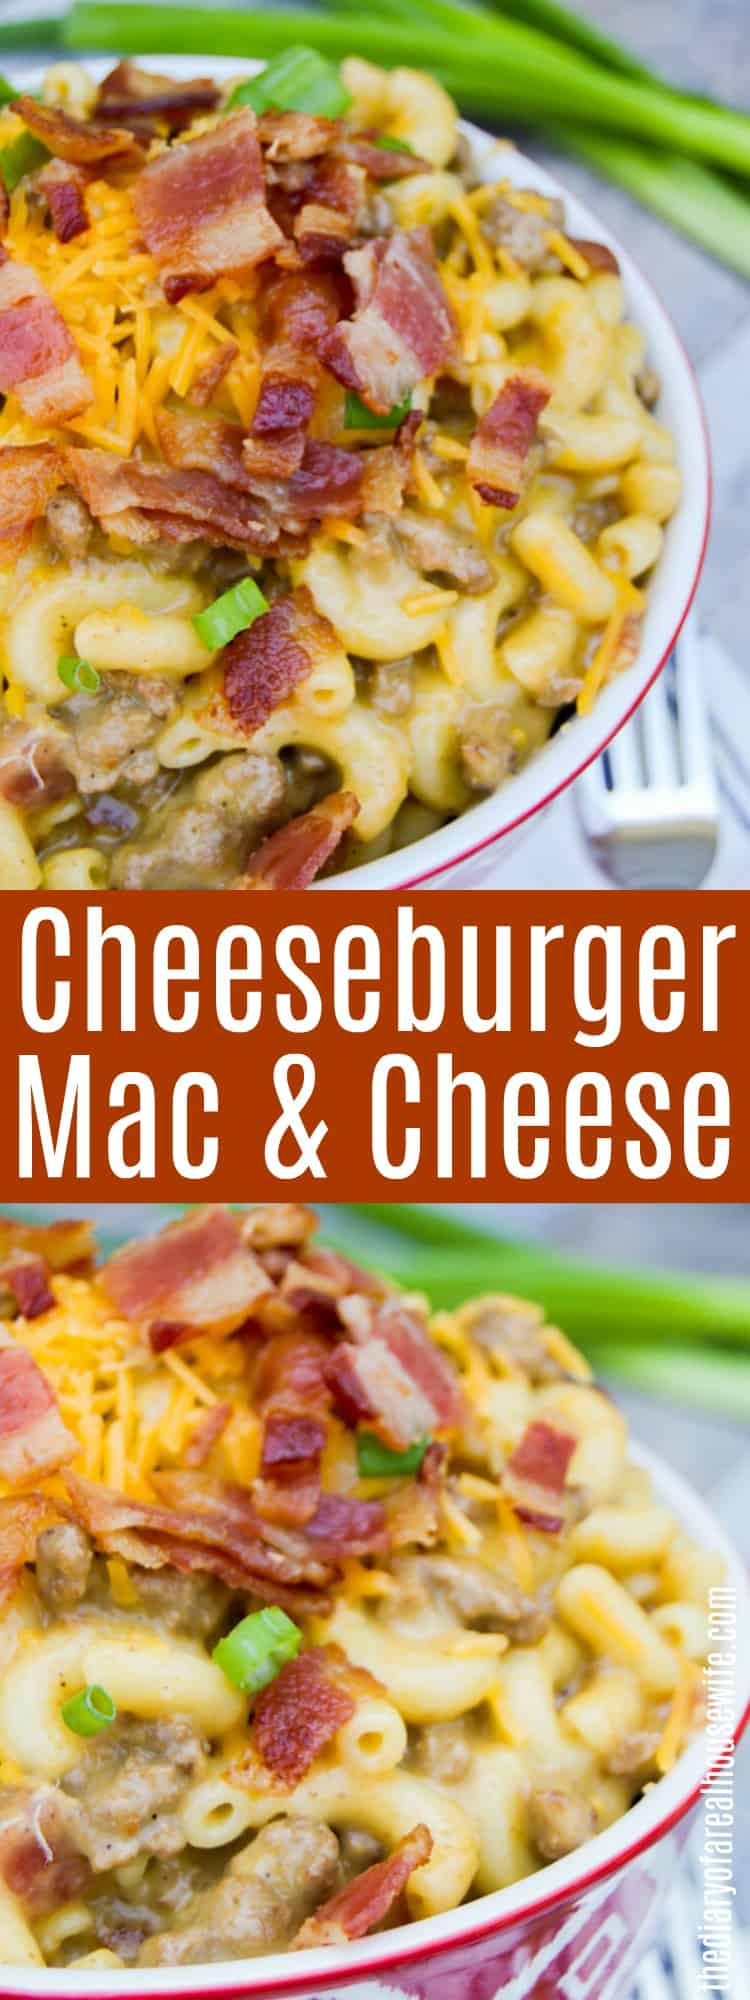 Cheeseburger Mac And Cheese The Diary Of A Real Housewife